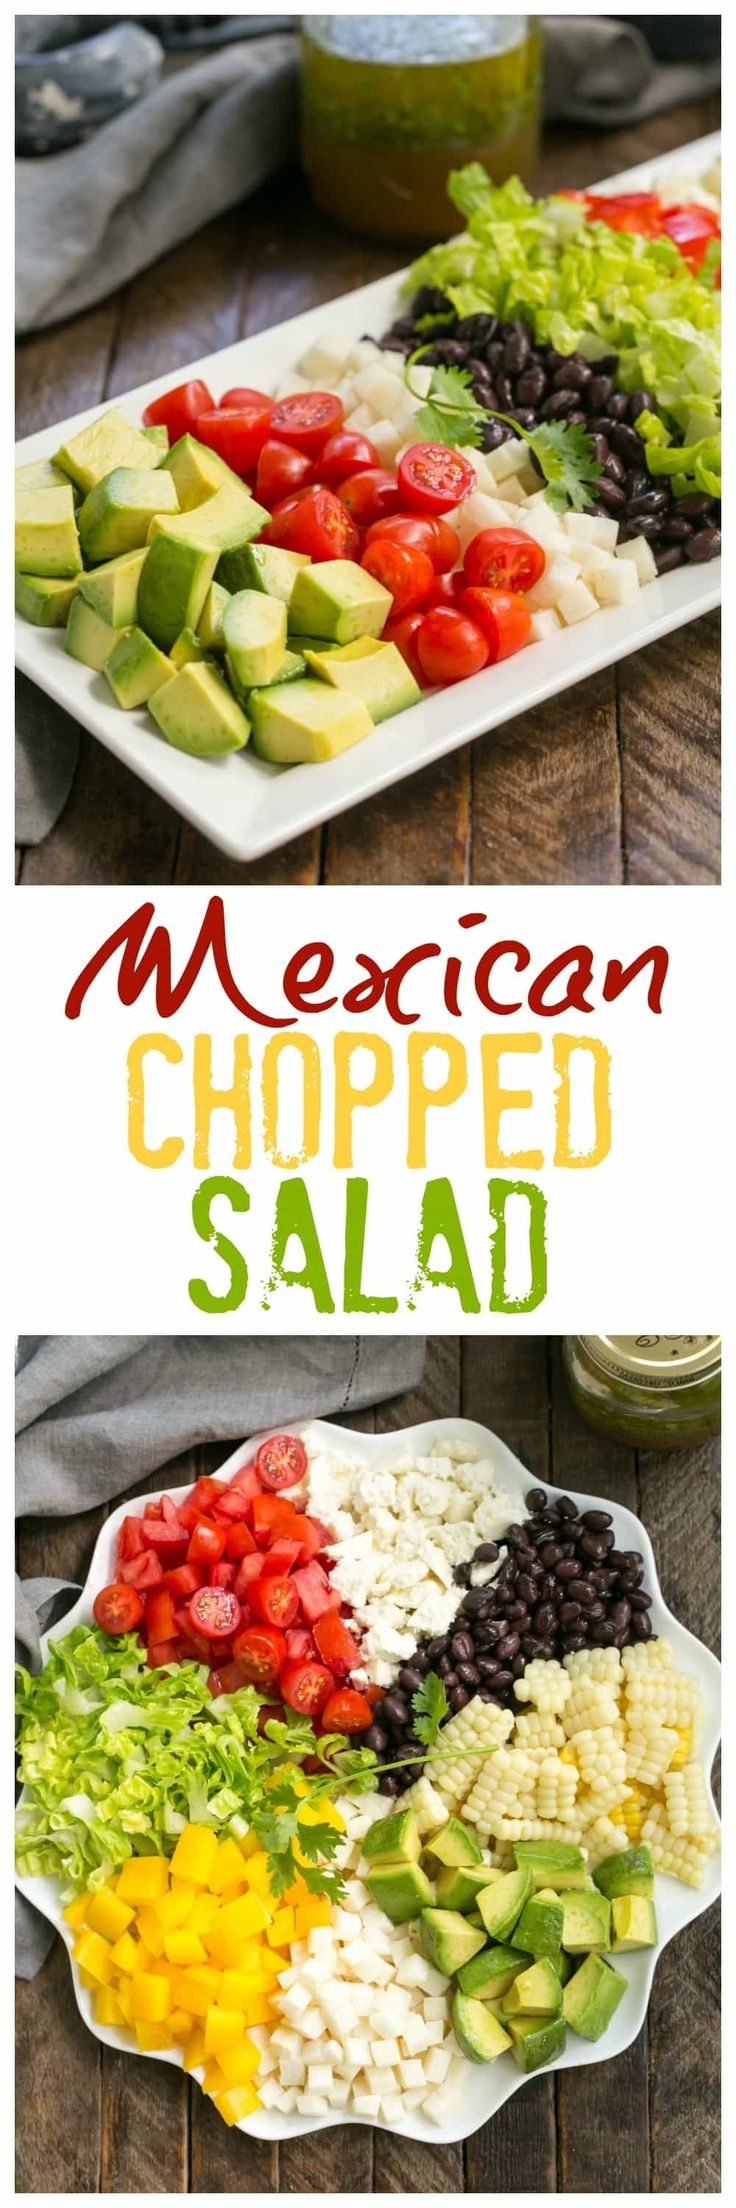 Mexican Chopped Salad with Cilantro Vinaigrette | A marvelous salad chock full of veggies and topped with a lime, cilantro dressing with a touch of heat! @lizzydo